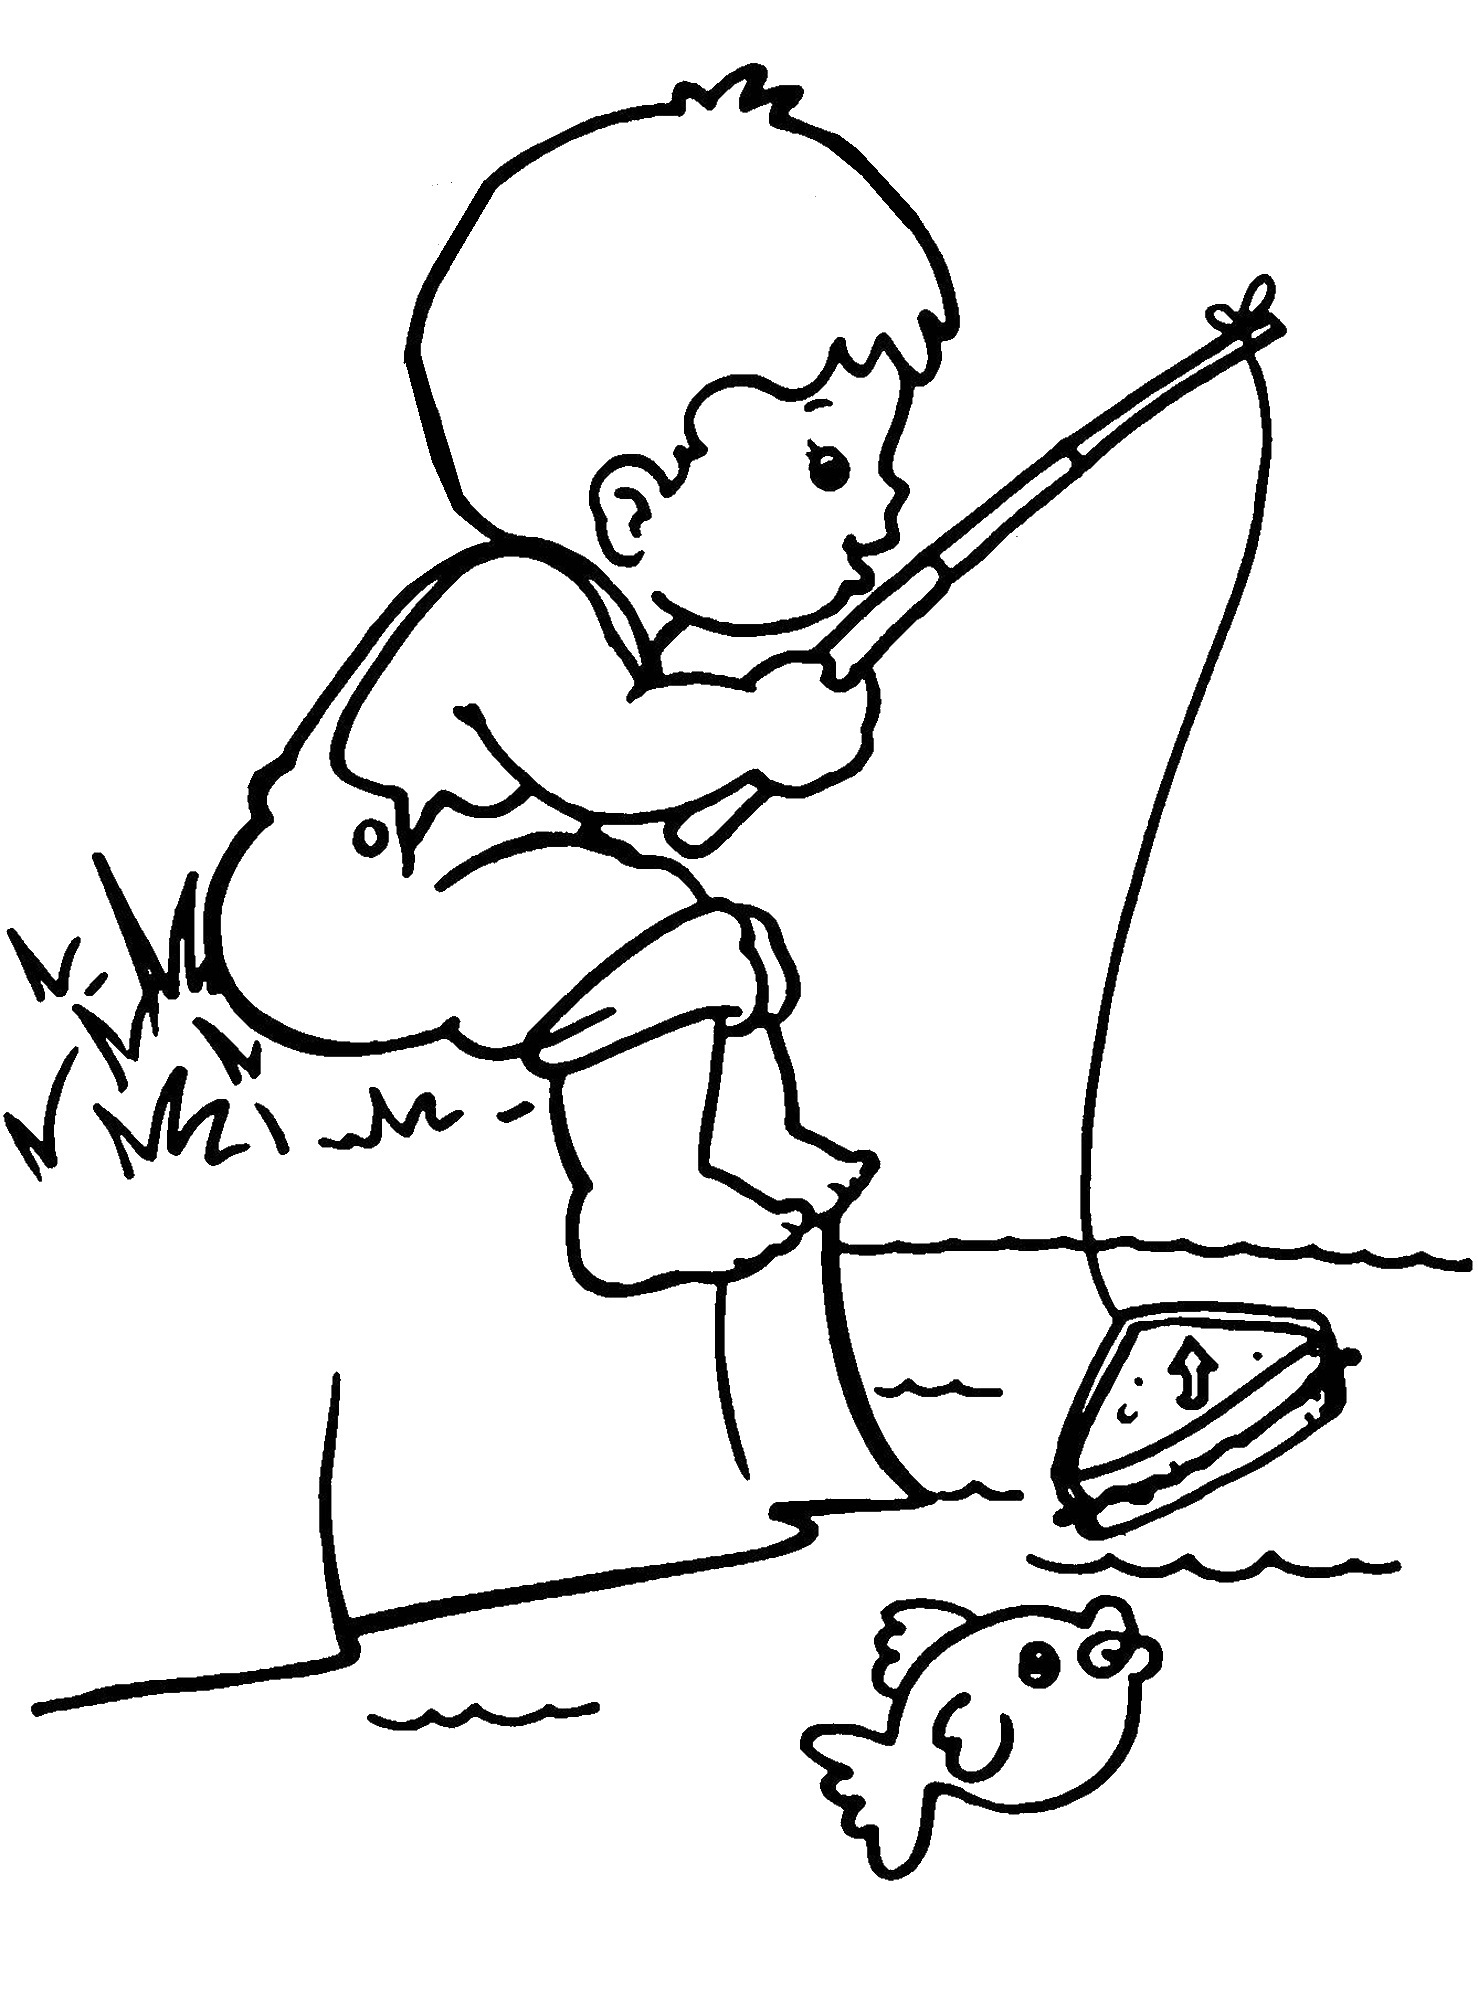 Free Printable Boy Coloring Pages For Kids Colouring Pages For Boys